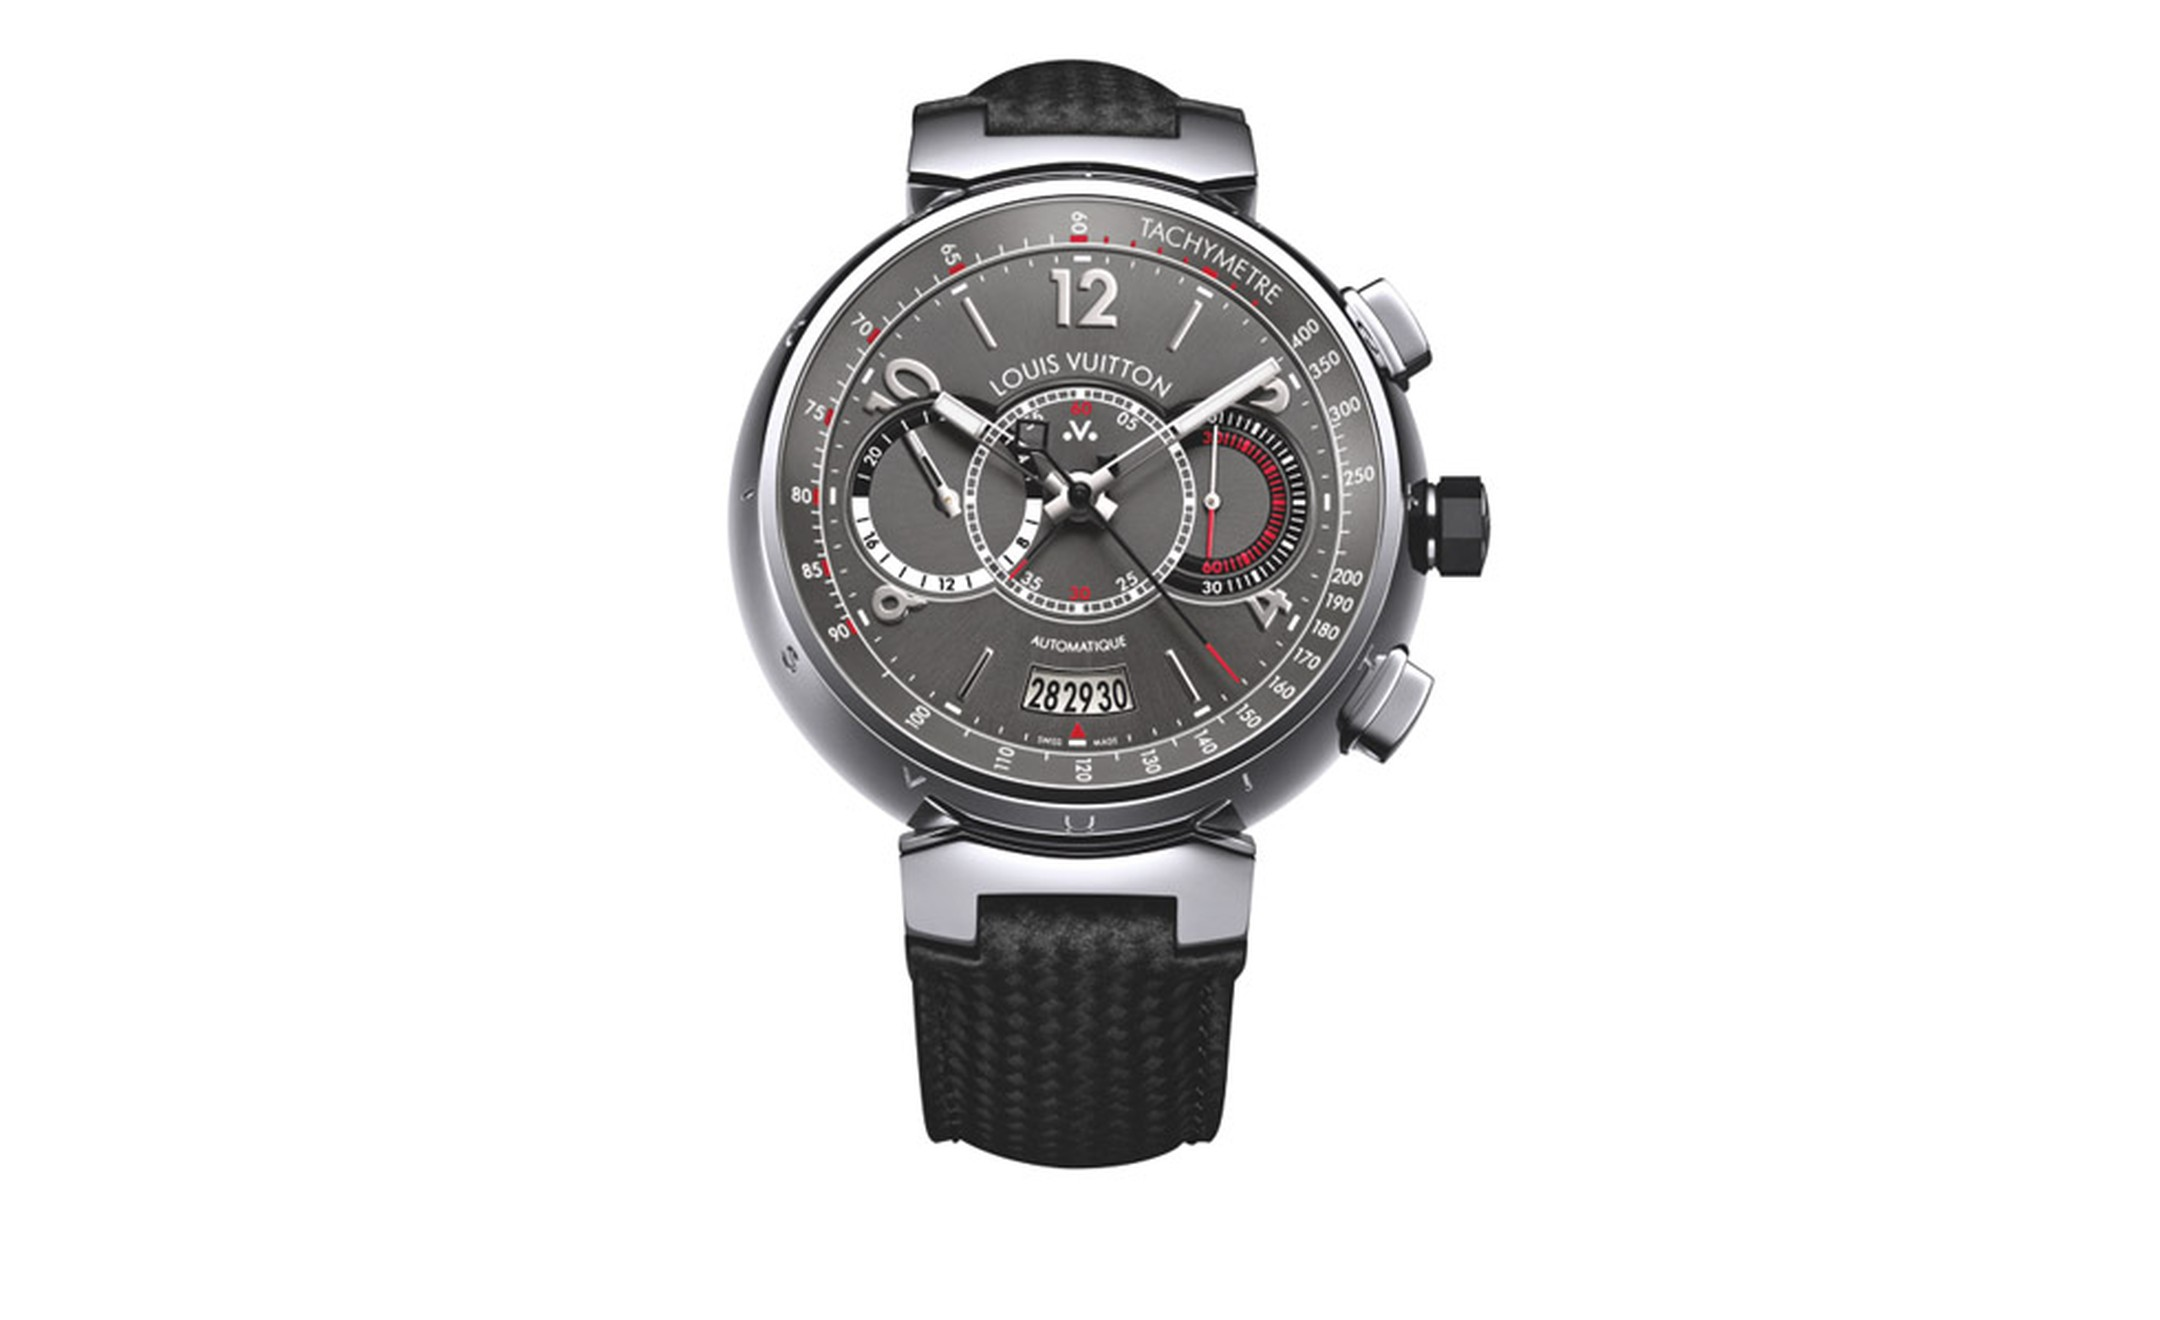 VUITTON, Voyagez Tambour Automatic Chronograph watch with a tachymeter. Set in a 44mm wide Tambour style case, the Voyagez is in steel with a gray and red dial with black and white trim. The dial design uses three middle aligned subdials for the...